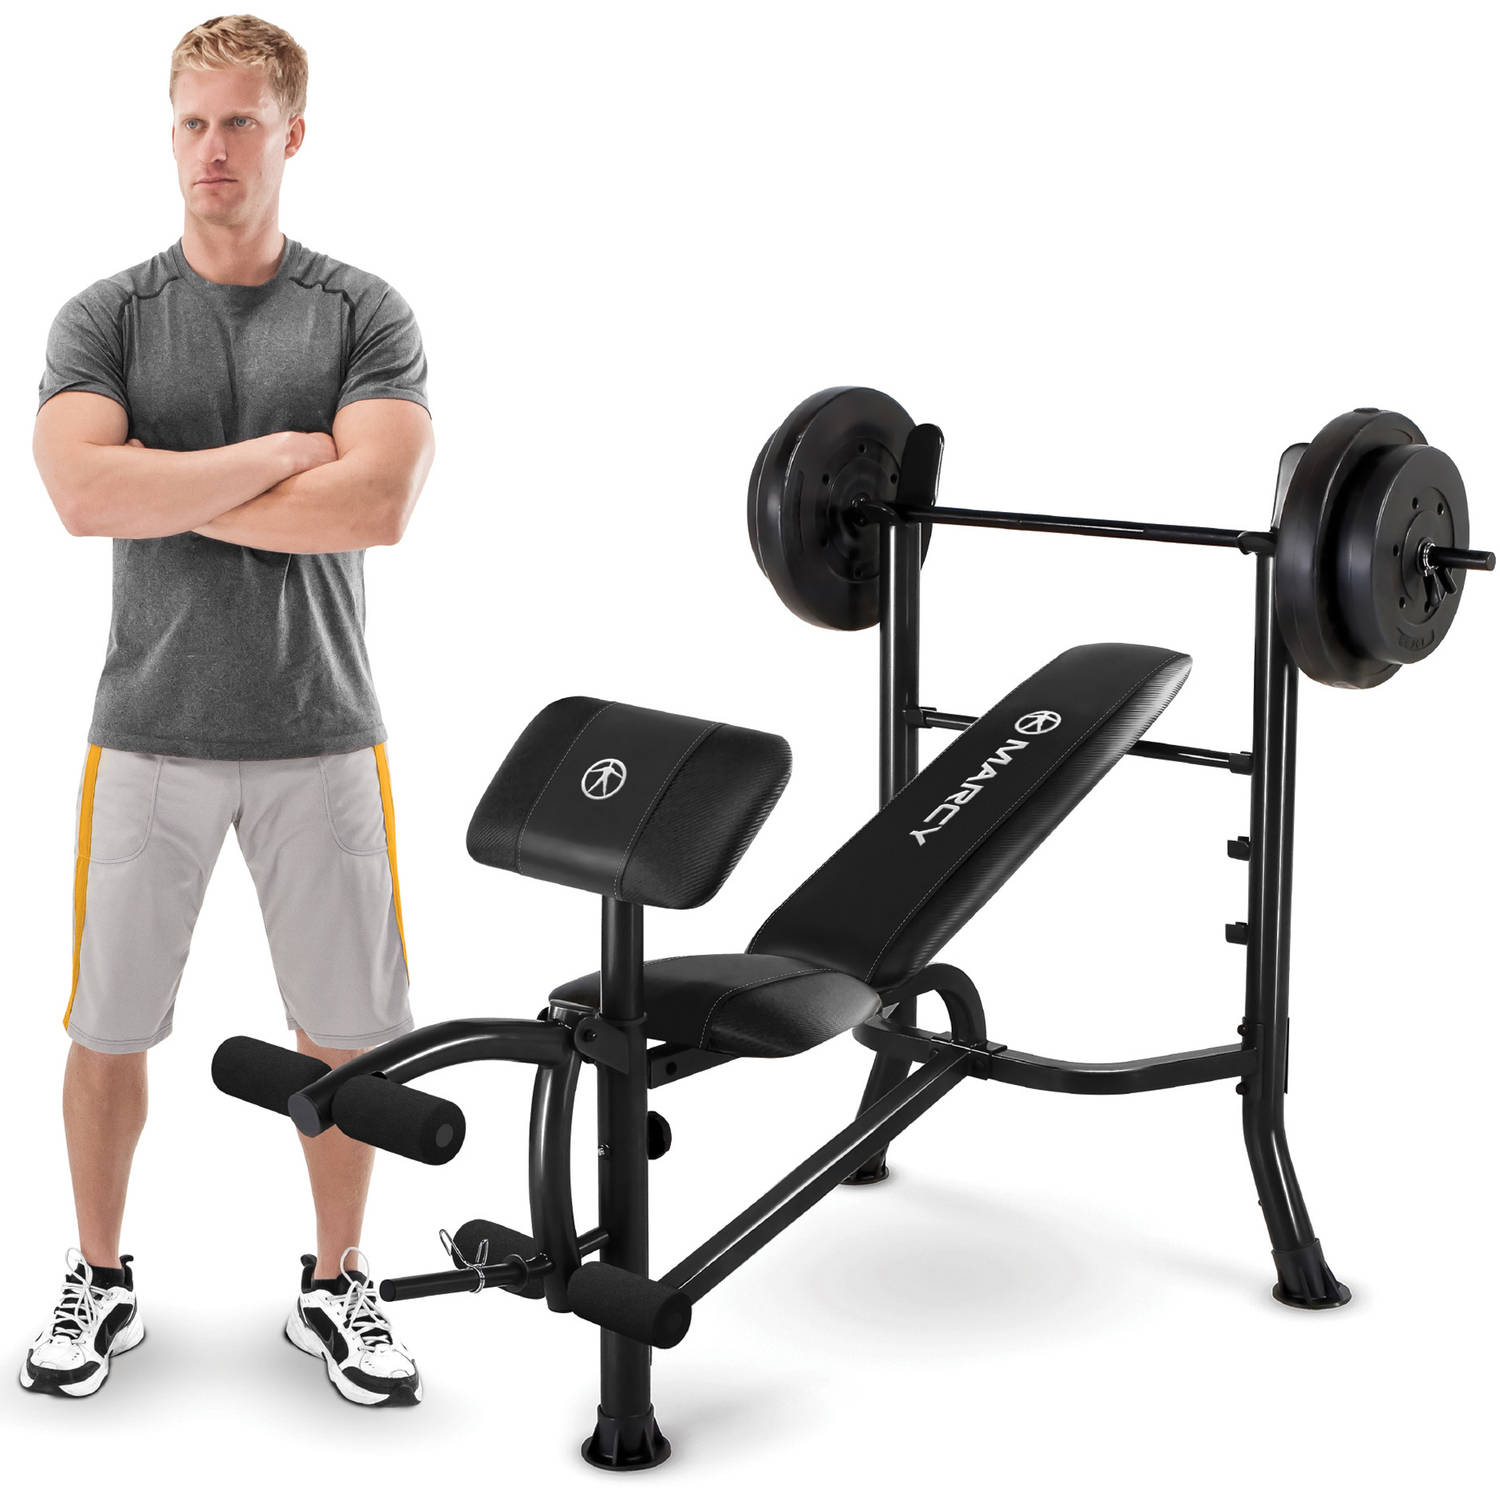 Marcy Mwb 20101 Standard Bench 80 Pound Weight Set